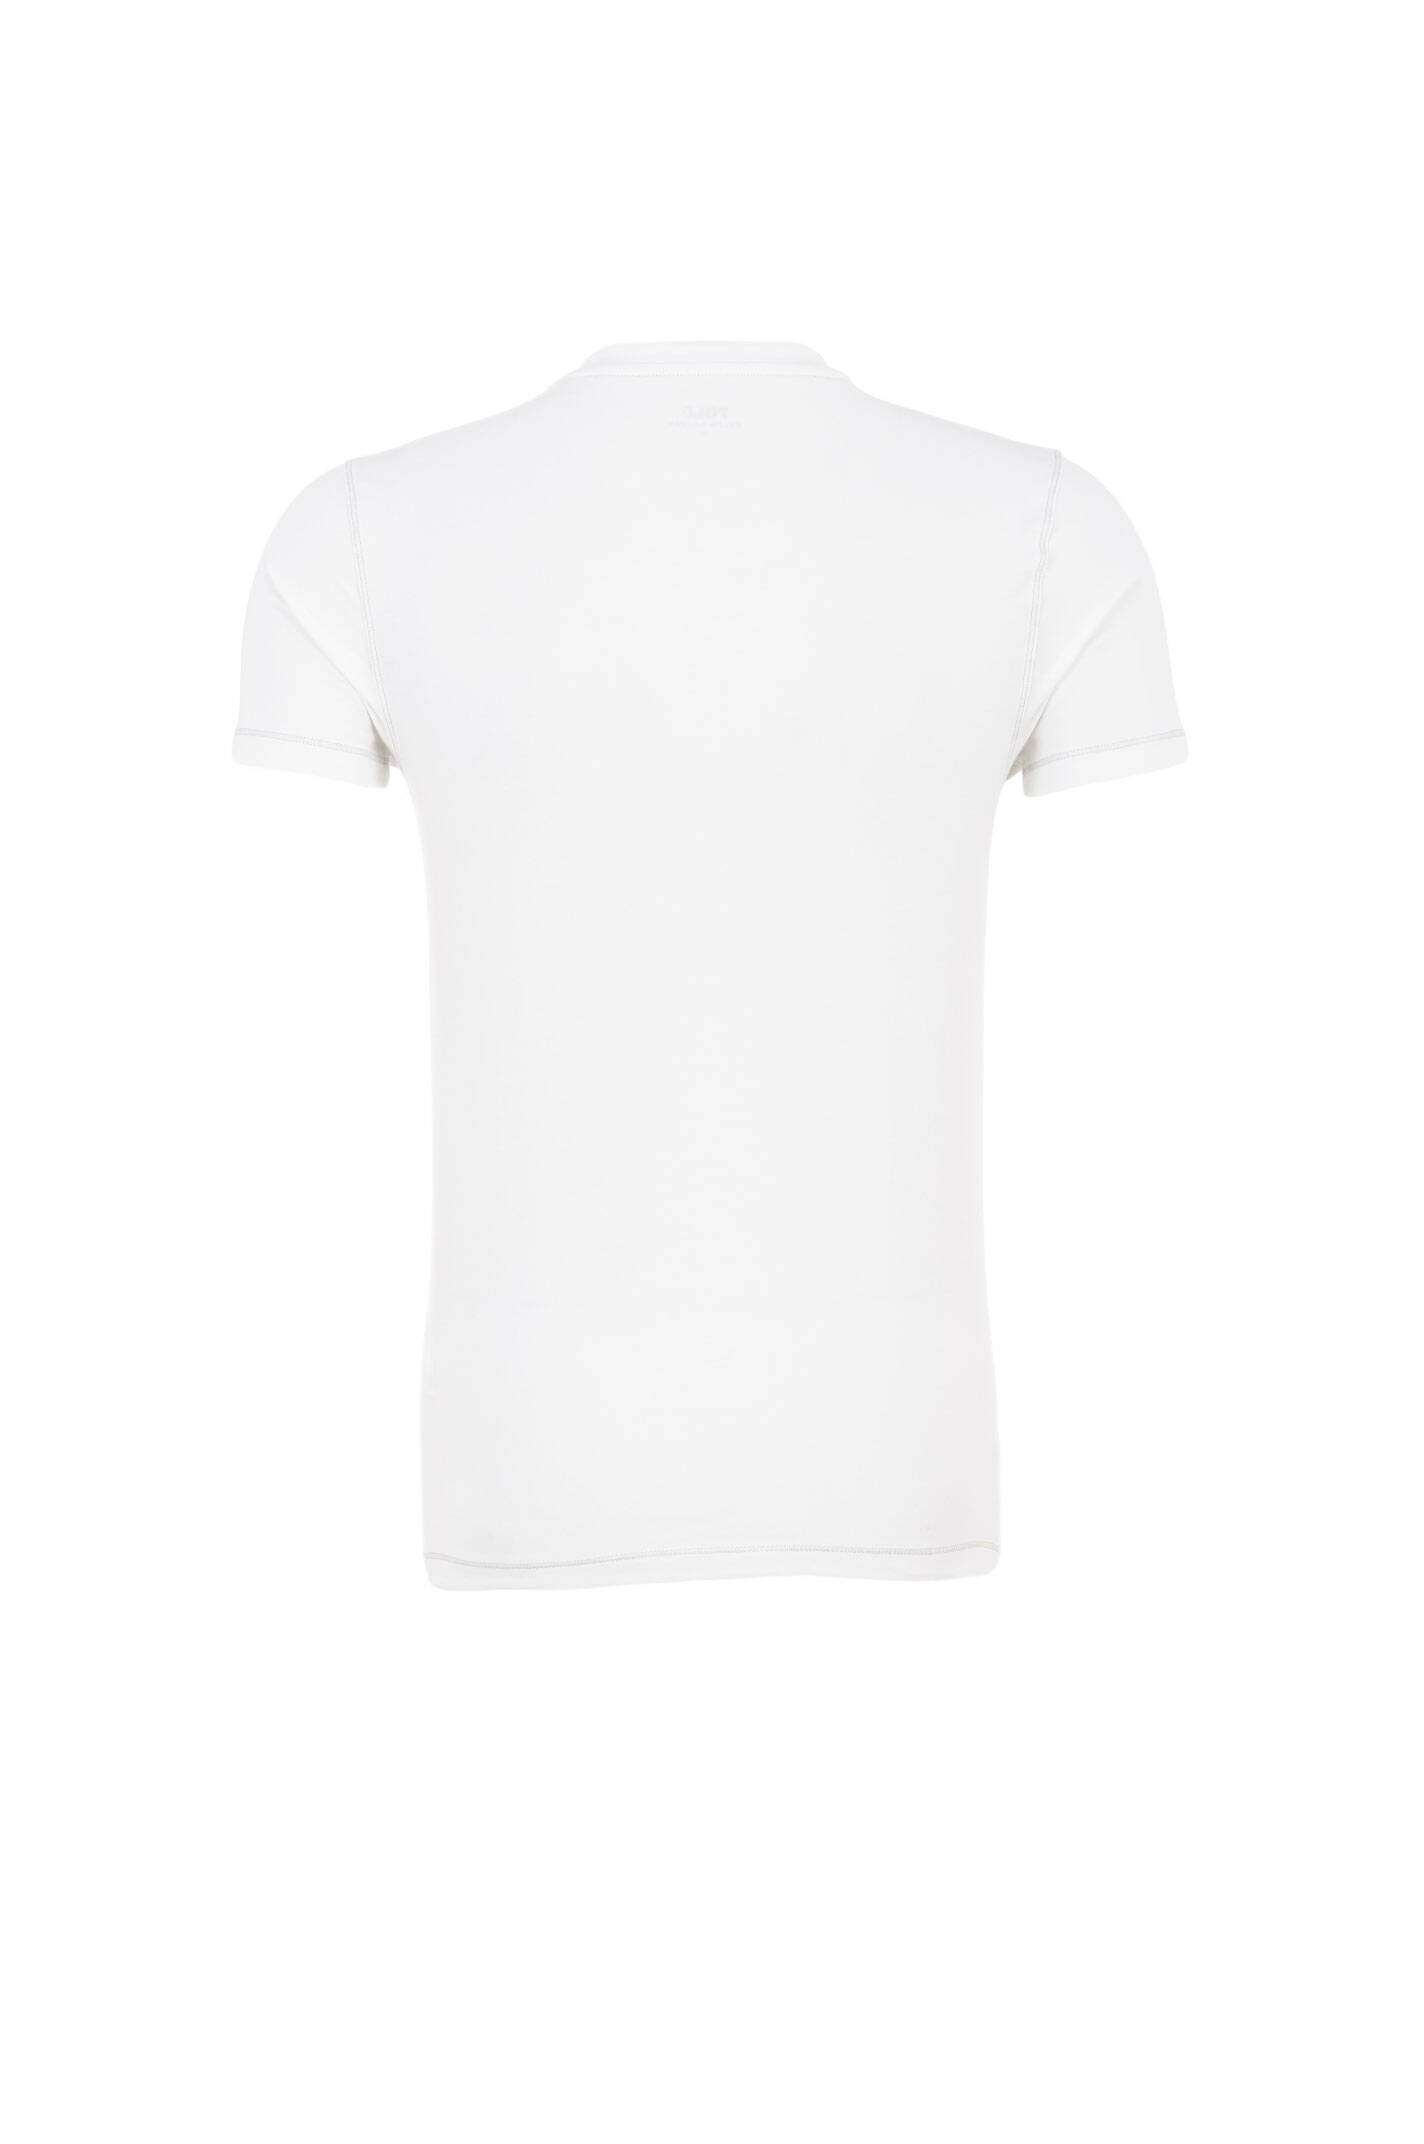 T shirt undershirt polo ralph lauren white for Polo shirt with undershirt